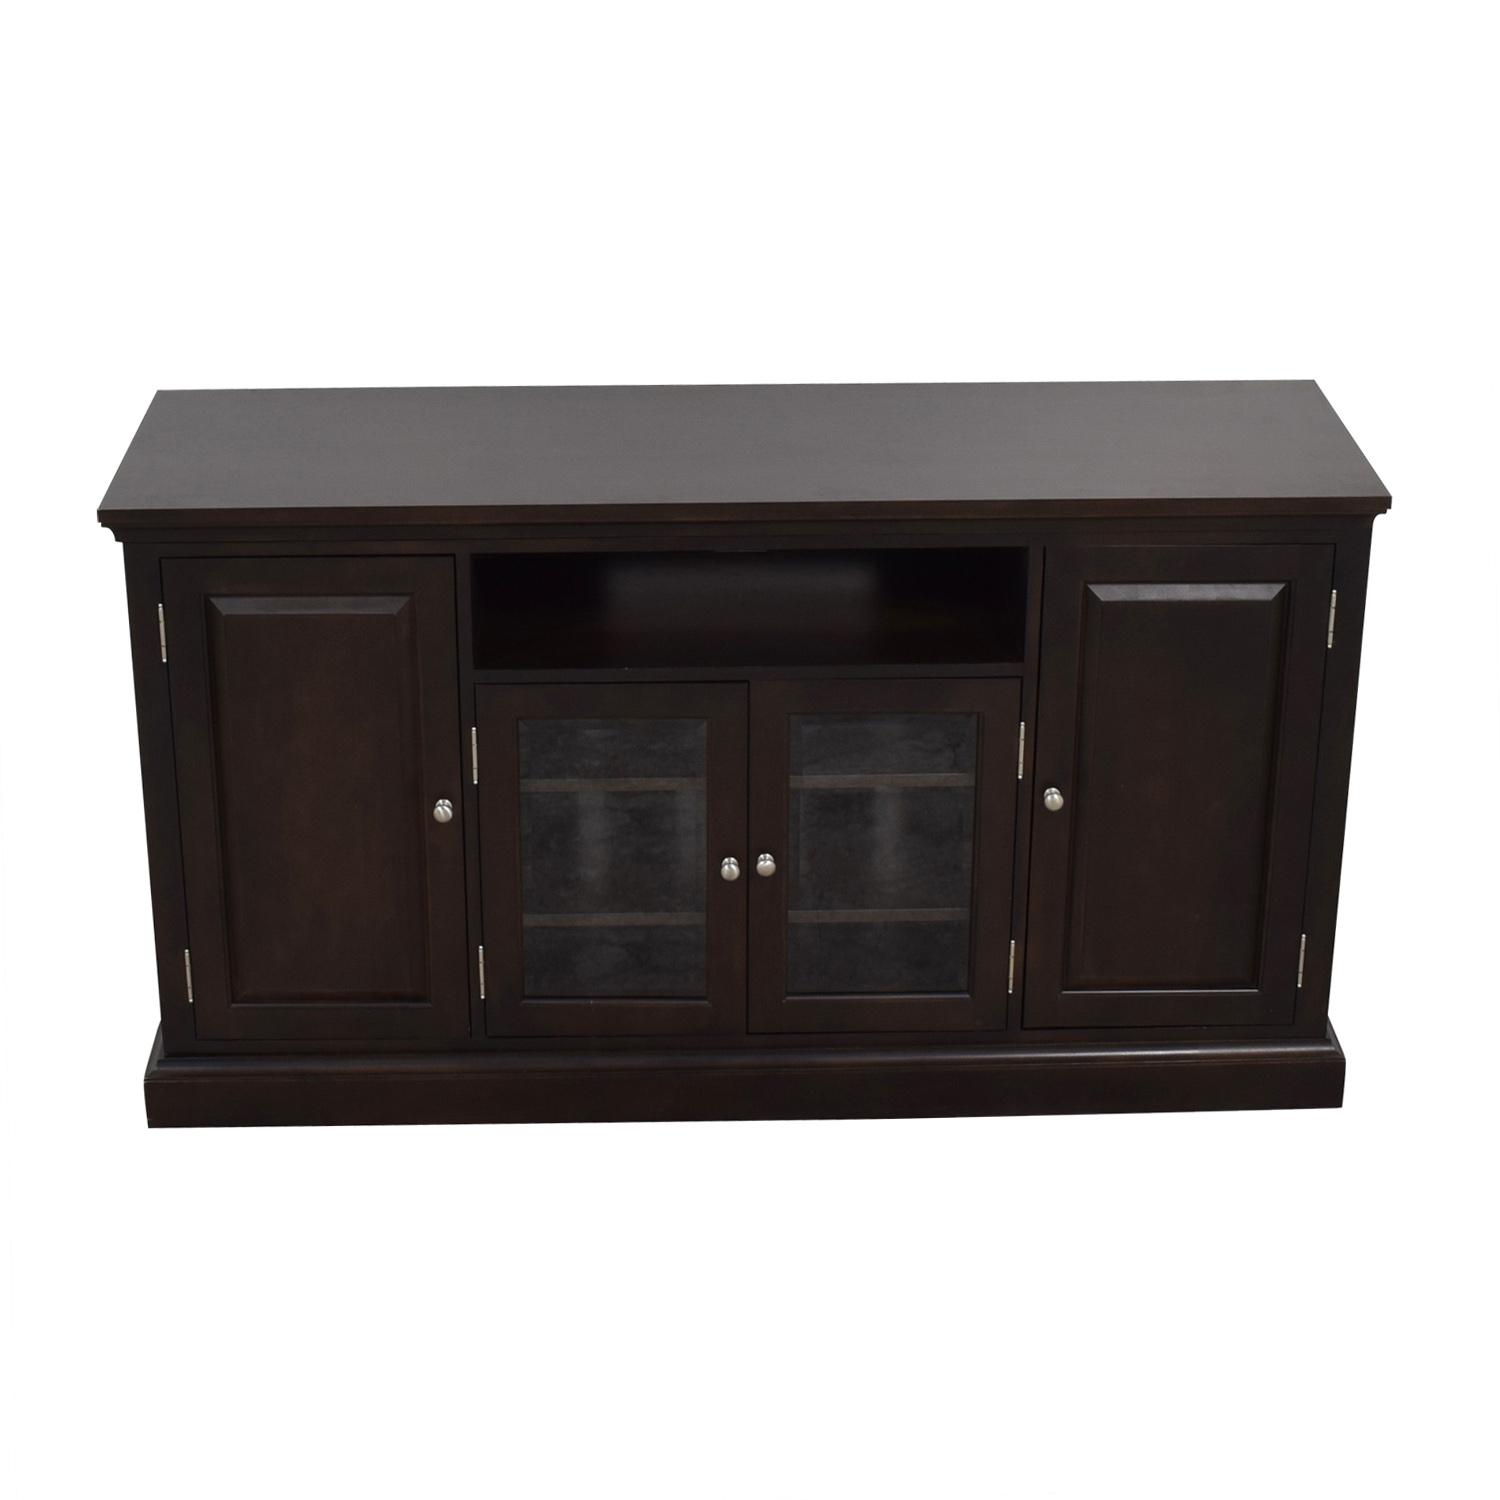 Ethan Allen Ethan Allen Wood and Glass Media Cabinet